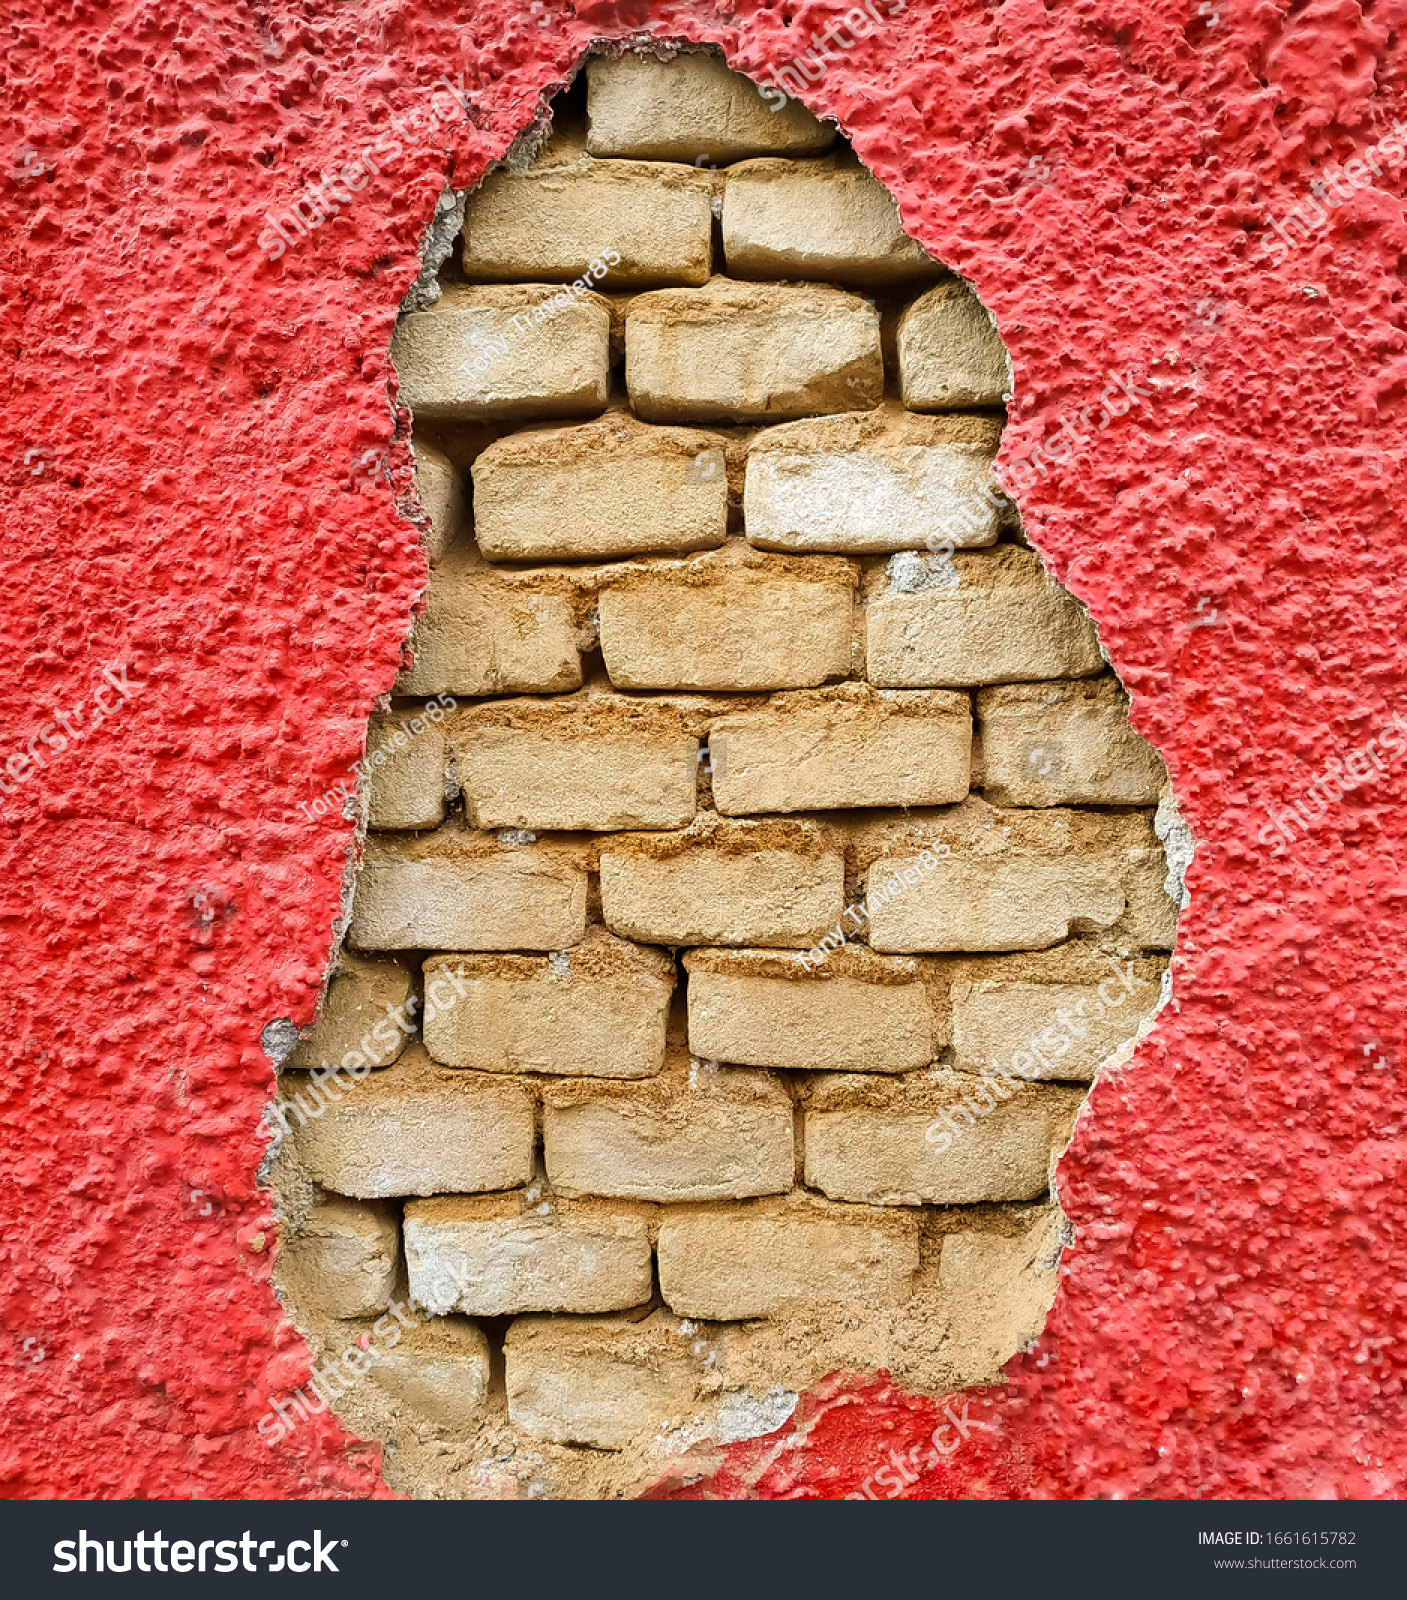 Exposed brickwork on a red wall.